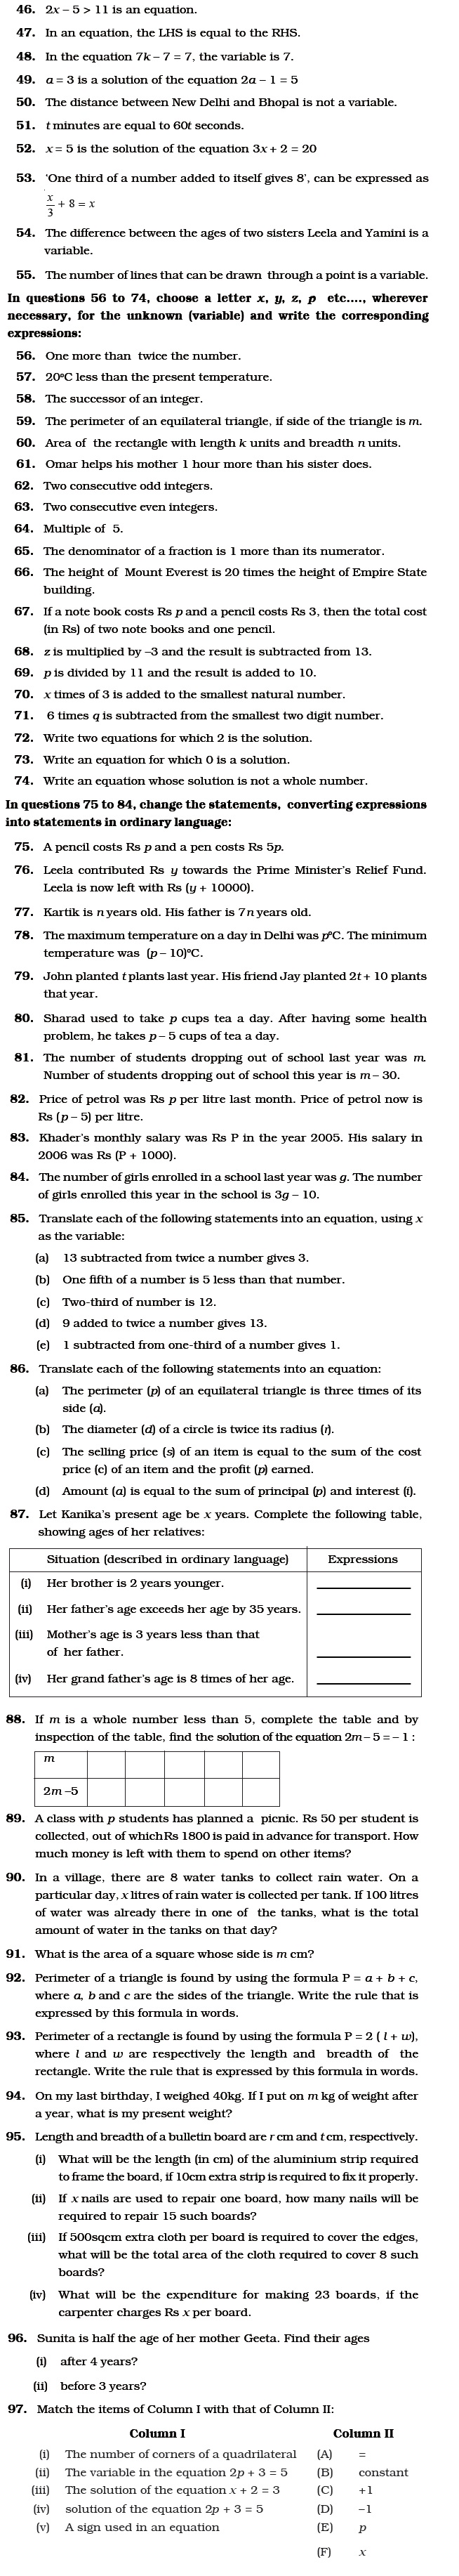 Objective Questions On Static Electricity Excellent Electrical Ohm39s Law For Simple Circuits Physics Lessons School Maths Mcq Class 6 Cbse Sample Paper Term 1 Questionclass Test Basics Of